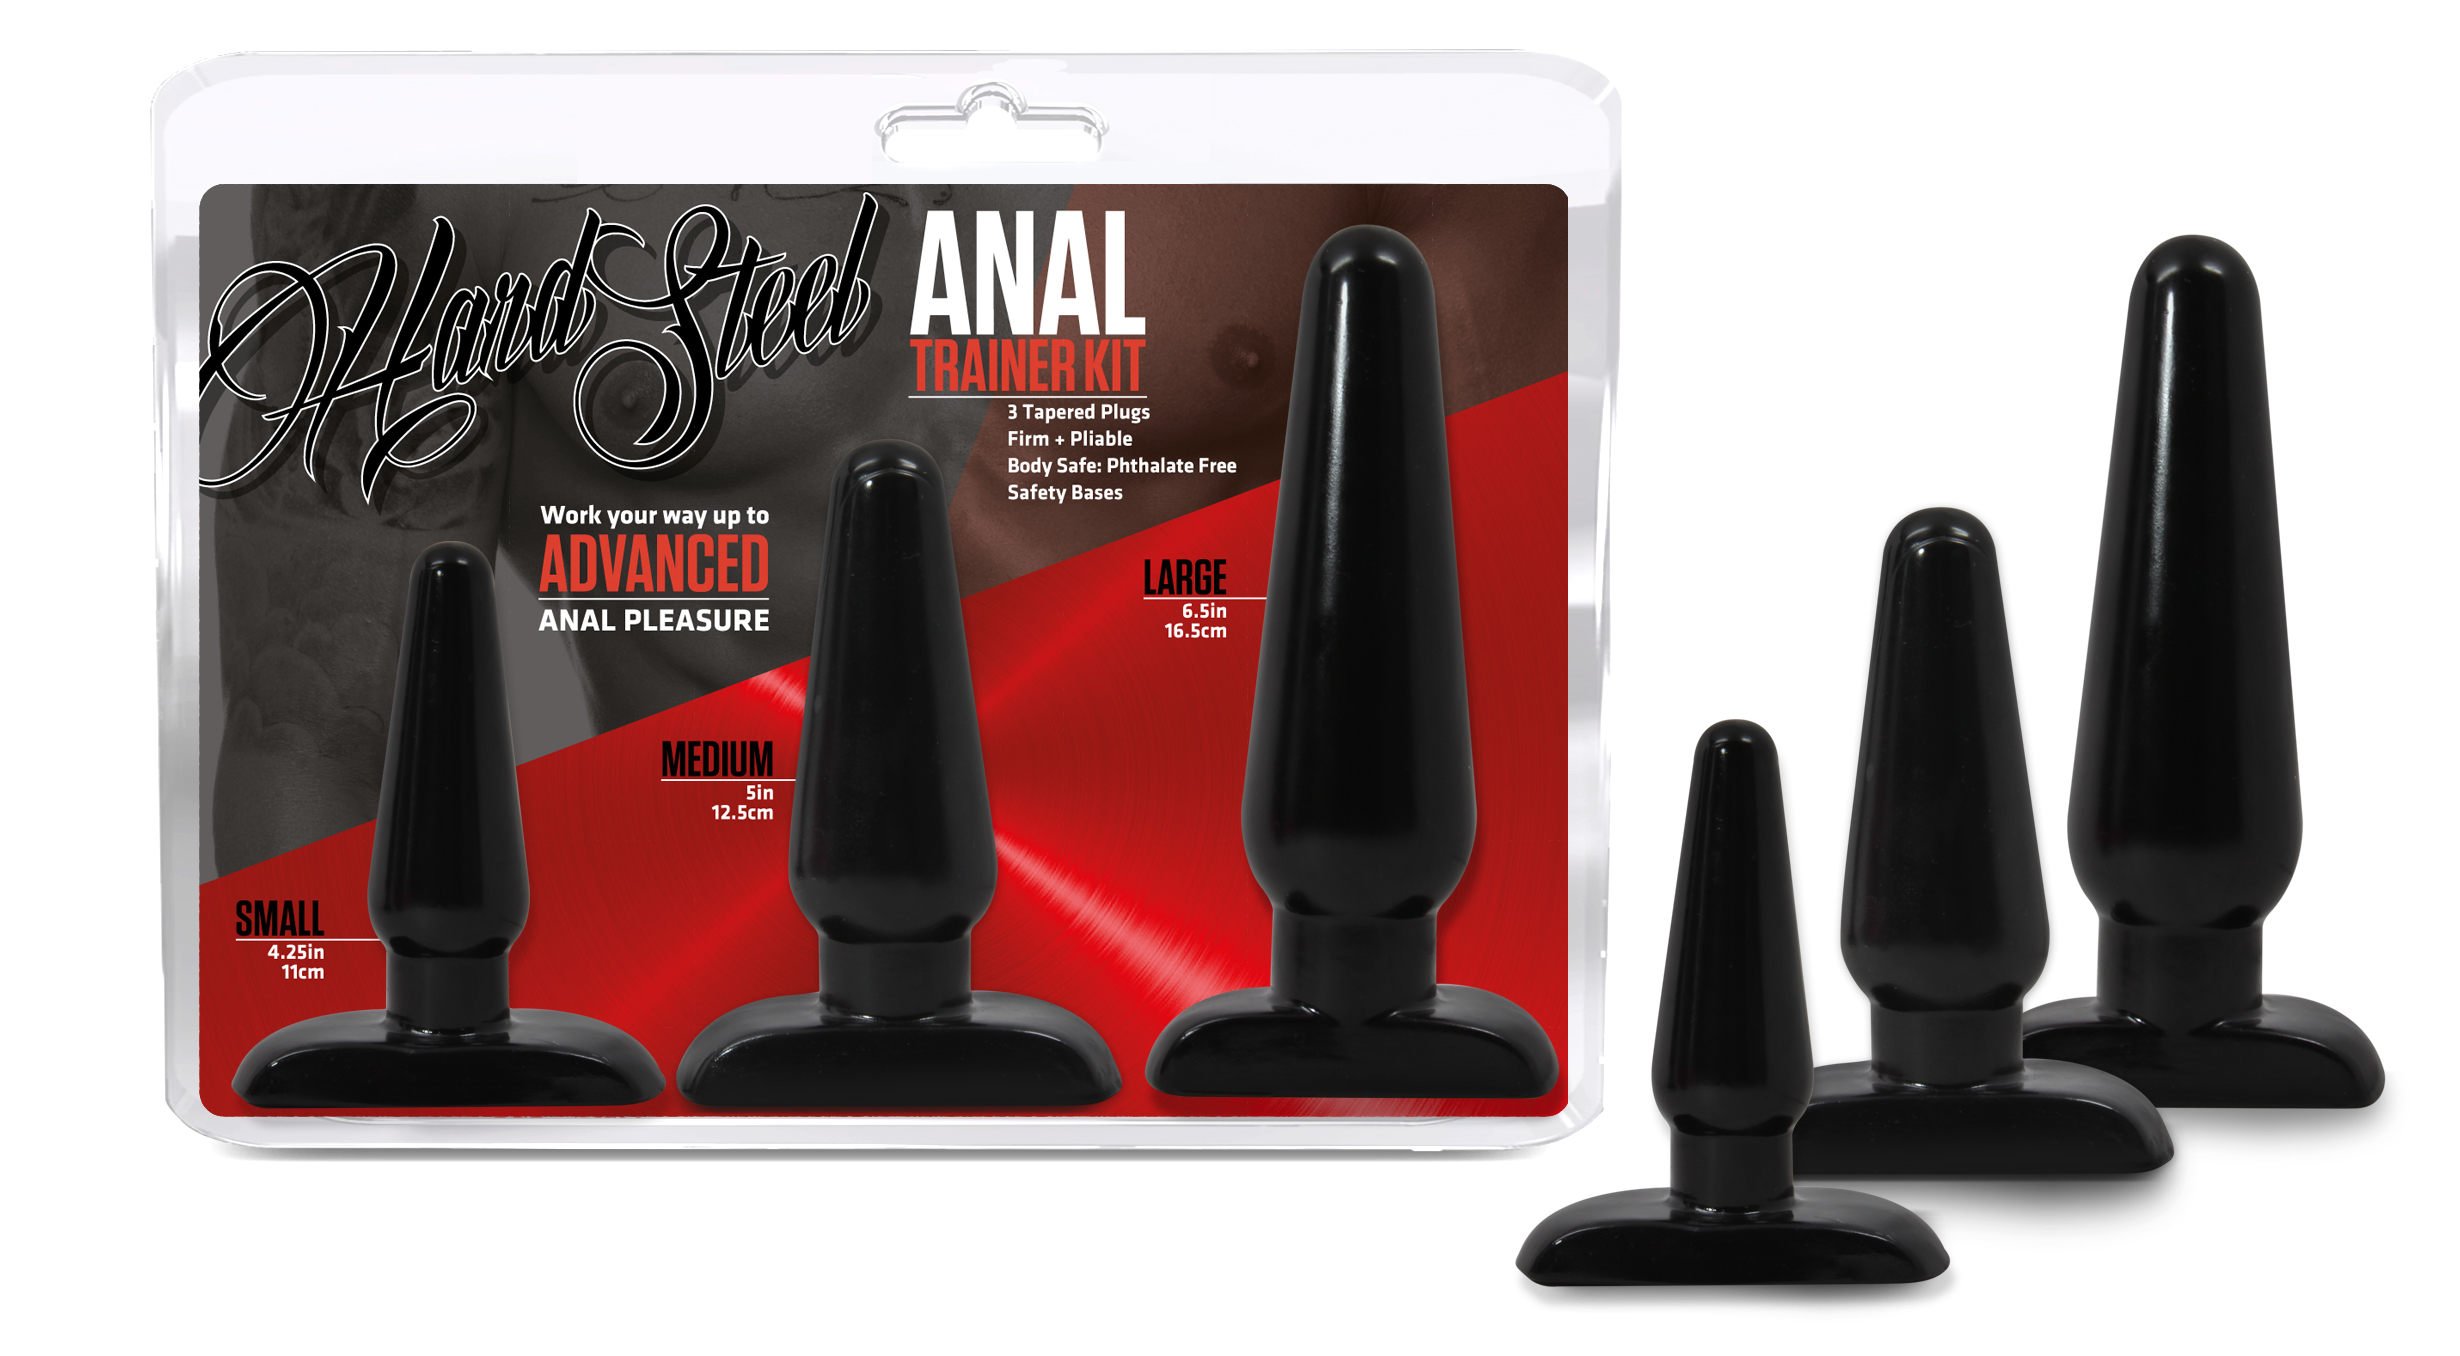 Hard Steel - Anal Trainer Kit - Black